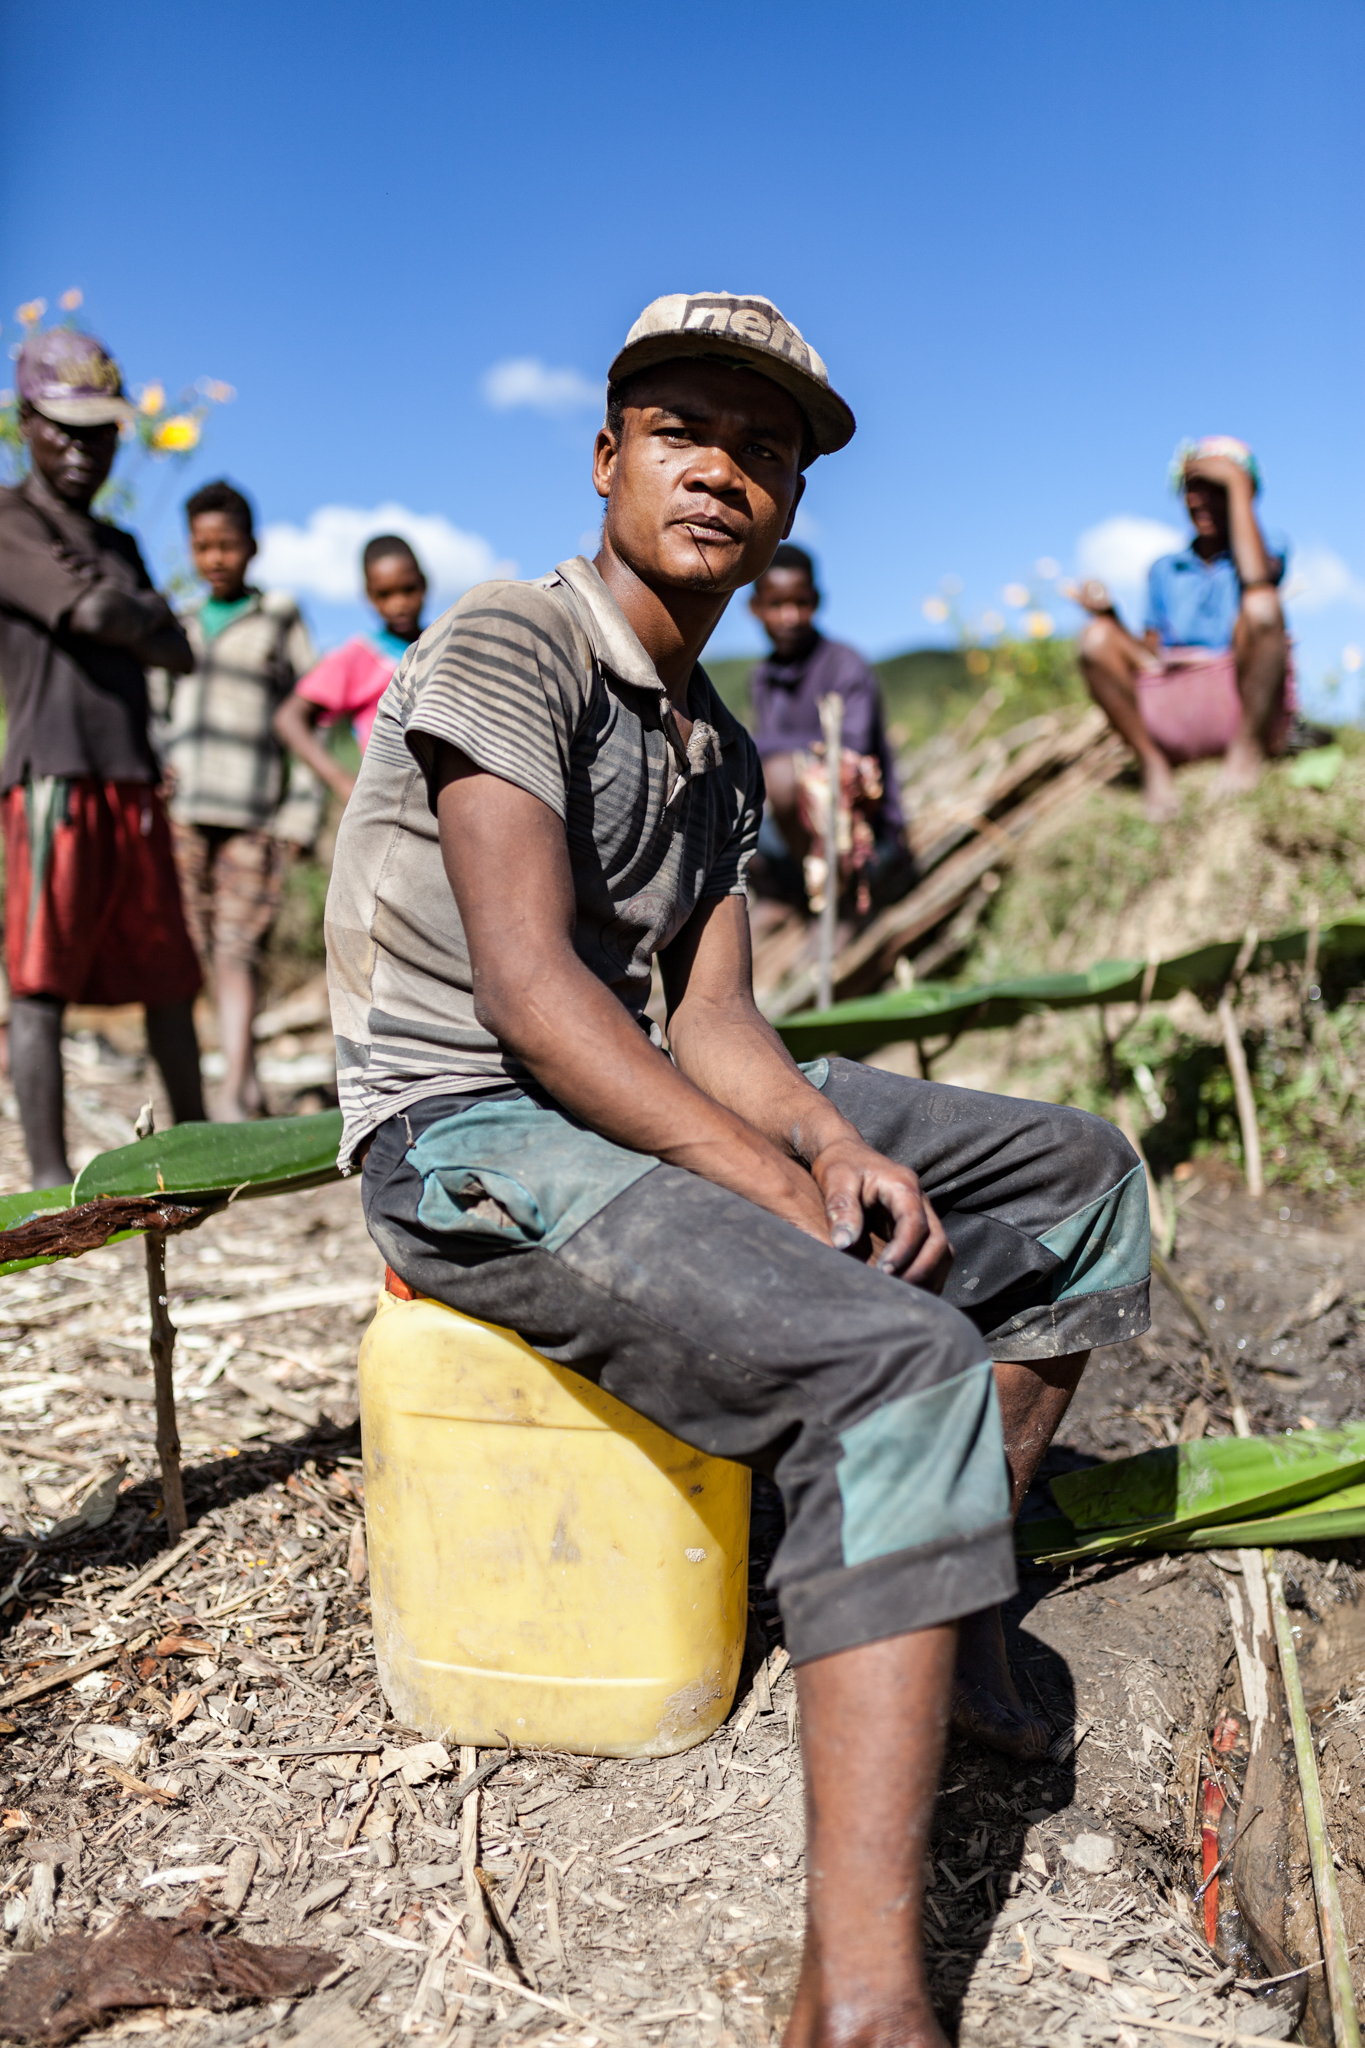 madagascar's moonshiners - Secret distilleries, black markets, smugglers trails and speakeasies